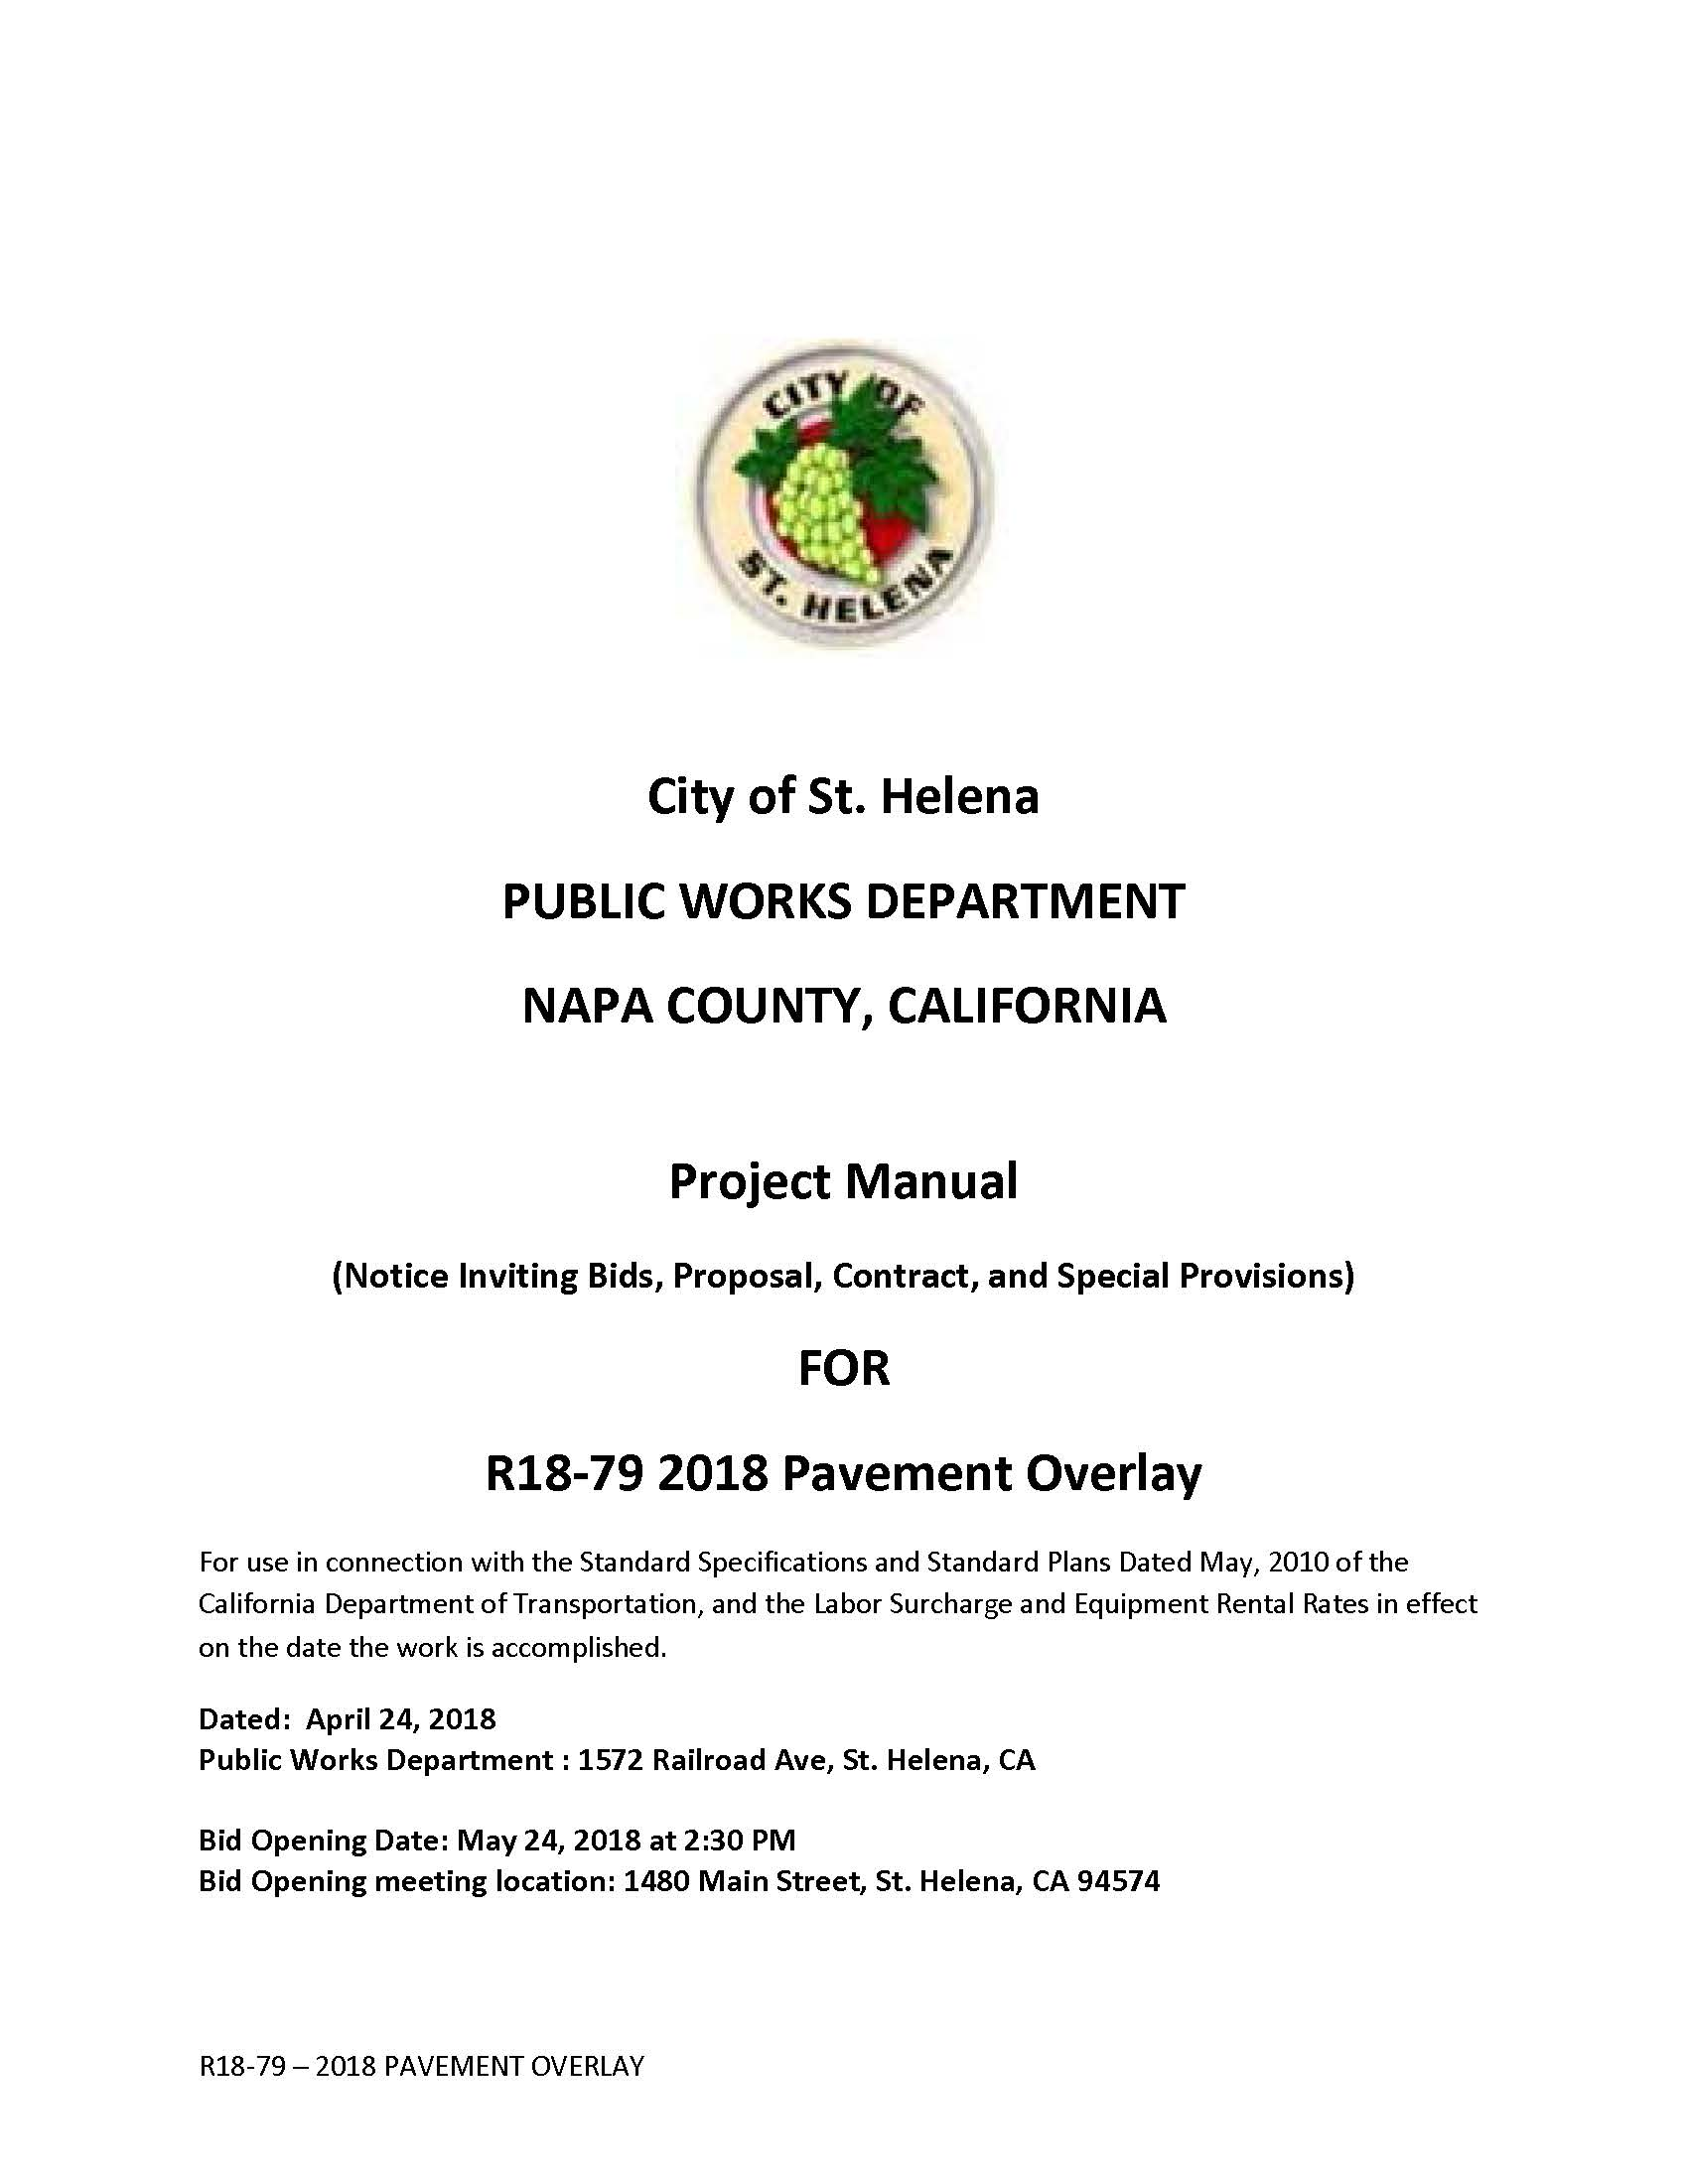 2018 Pavement Overlay R18-79 Project | City of St  Helena